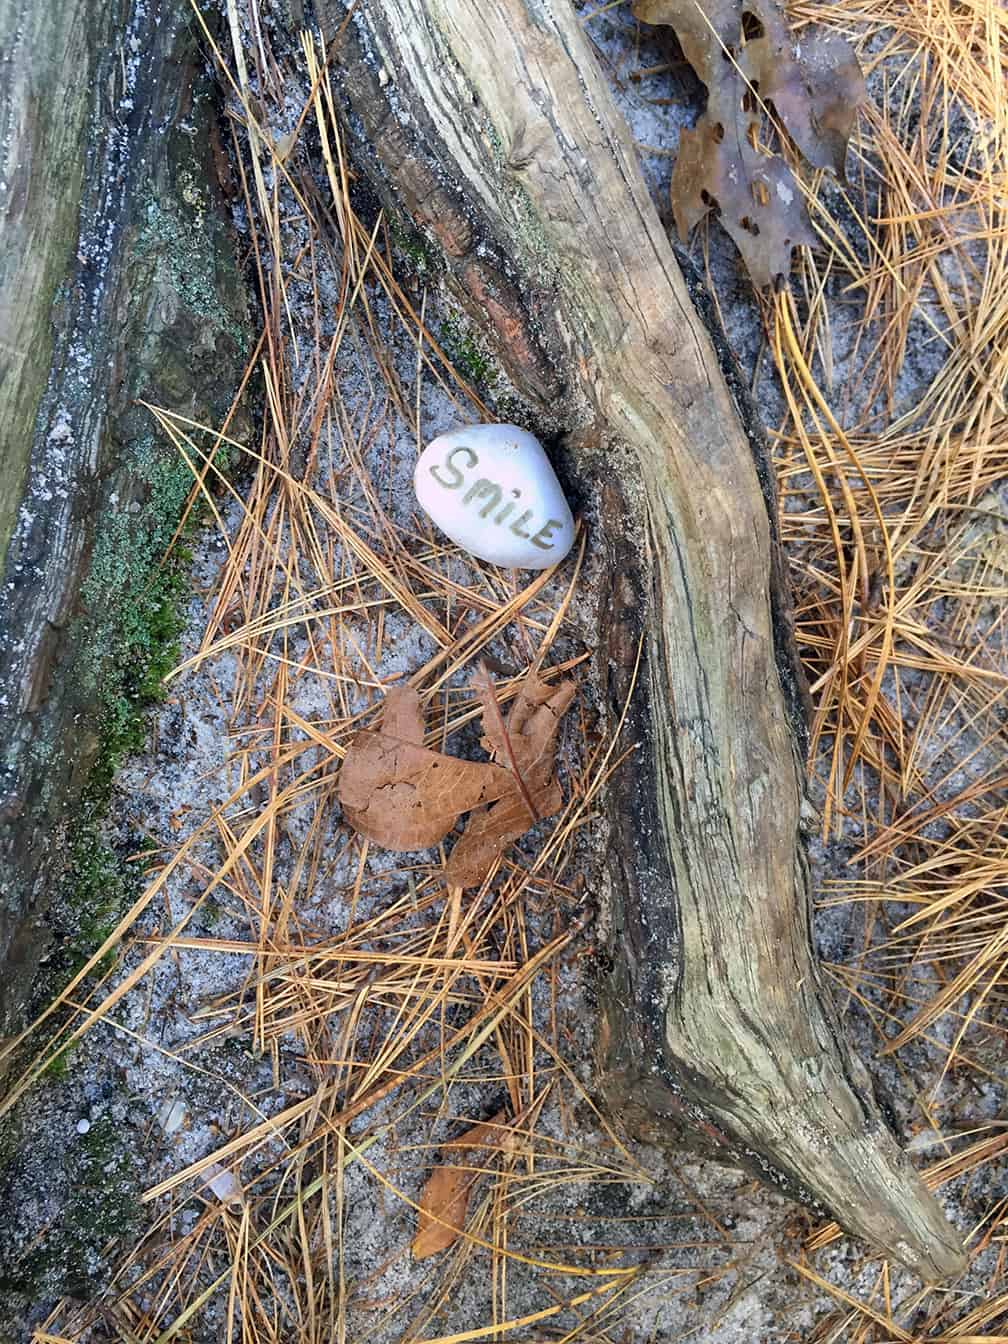 This is the first stone I came across in a woodland.